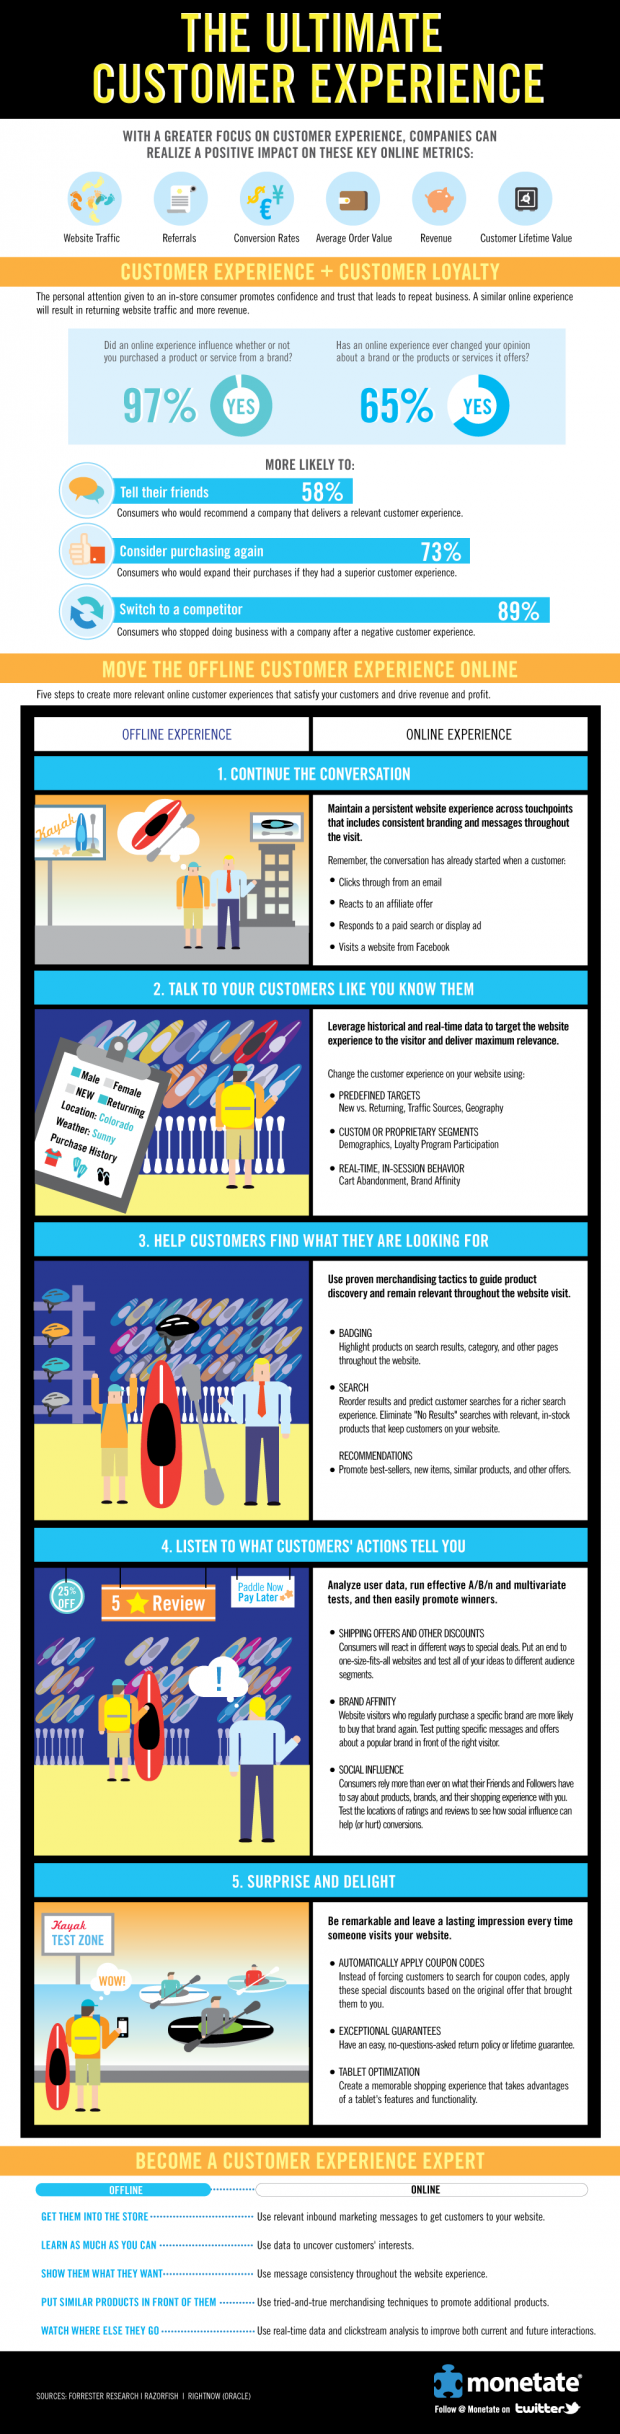 The ultimate customer experience - Infographic